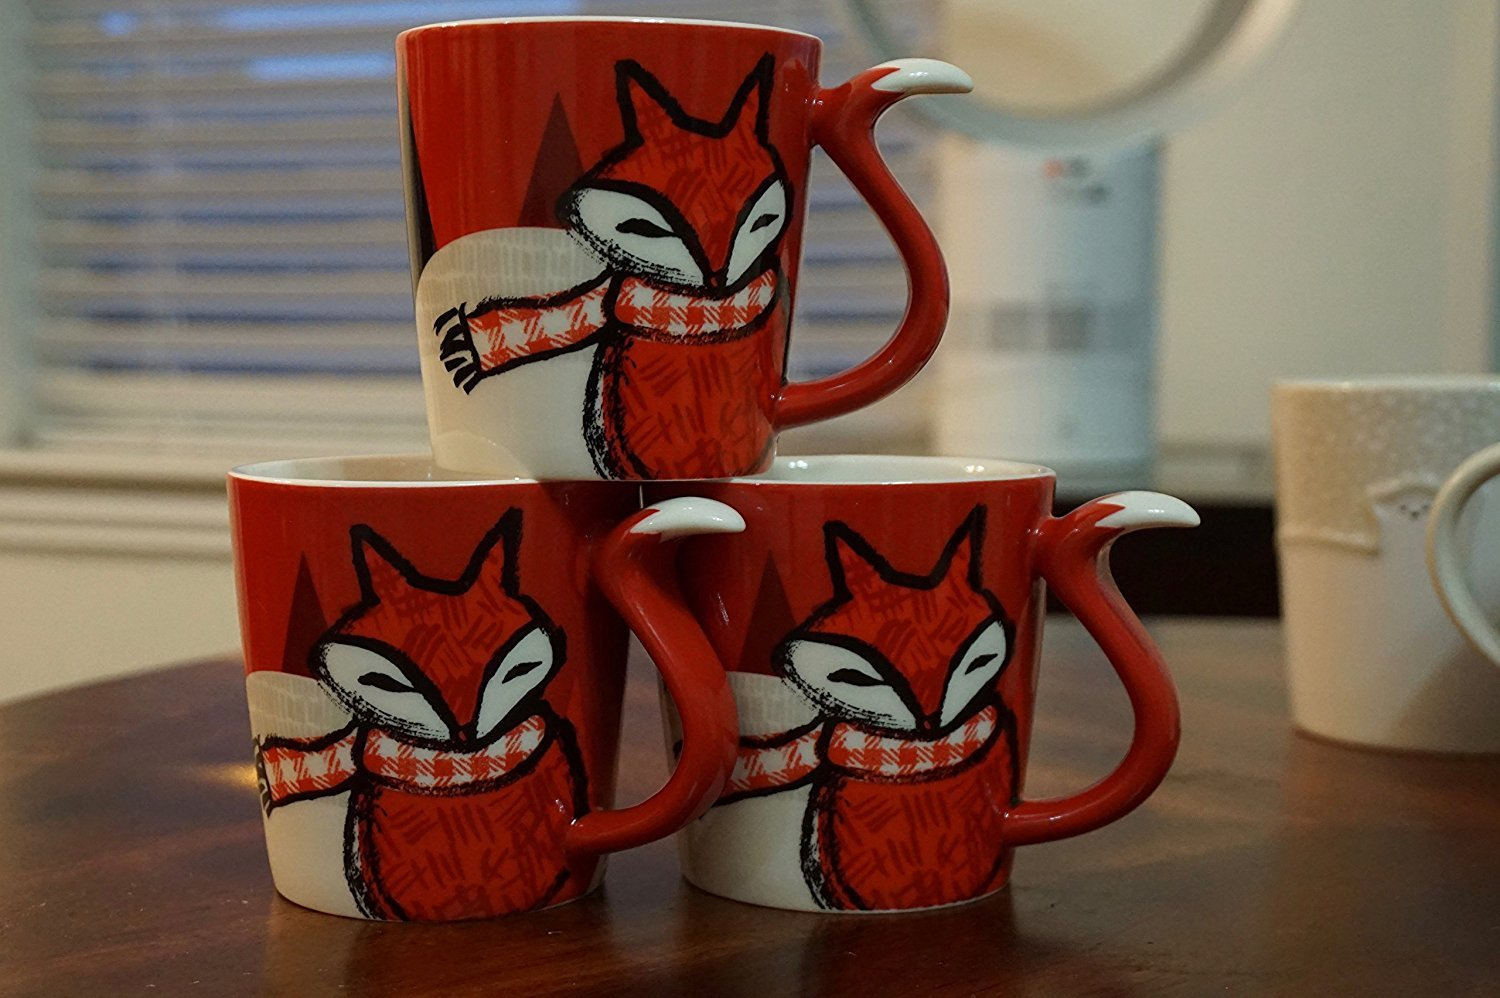 RARE Starbucks Holiday RED FOX Mug 12 Oz. 2016 by Starbucks (Image #2)